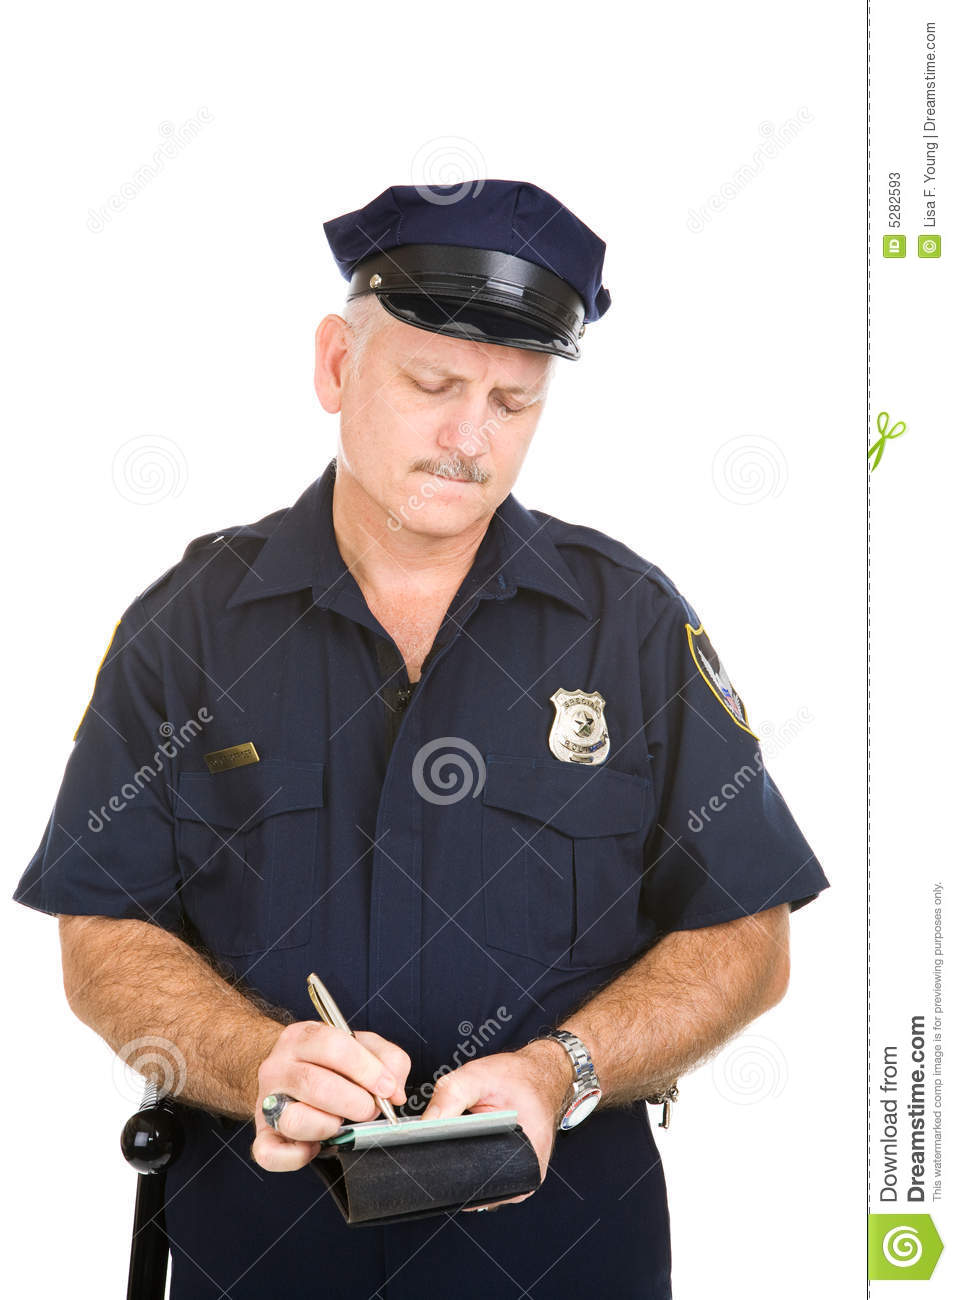 Police Officer - Parking Ticket